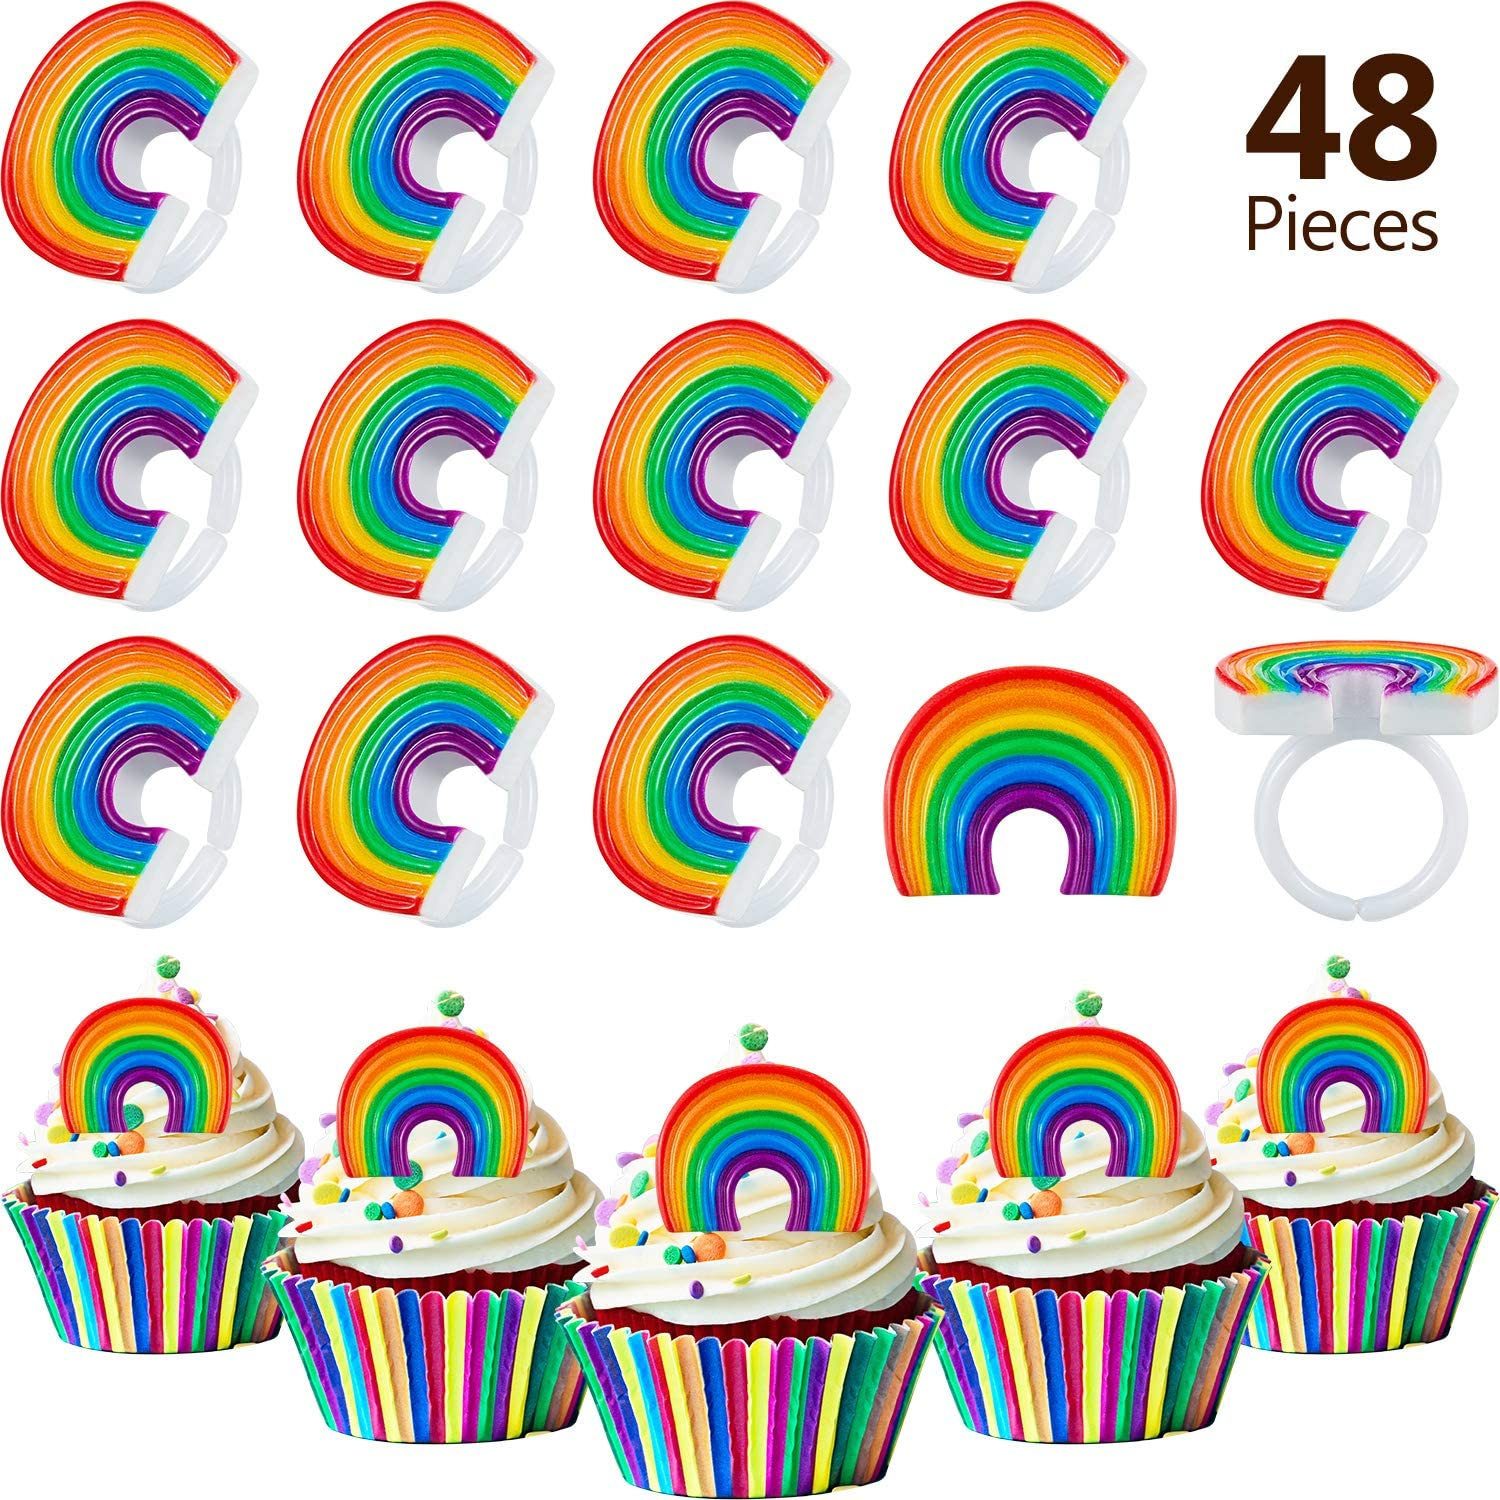 BBTO 48 Pieces Rainbow Cupcake Rings Rainbow Ring Cake Decoration Rainbow Topper Ring for Birthday Party Supply